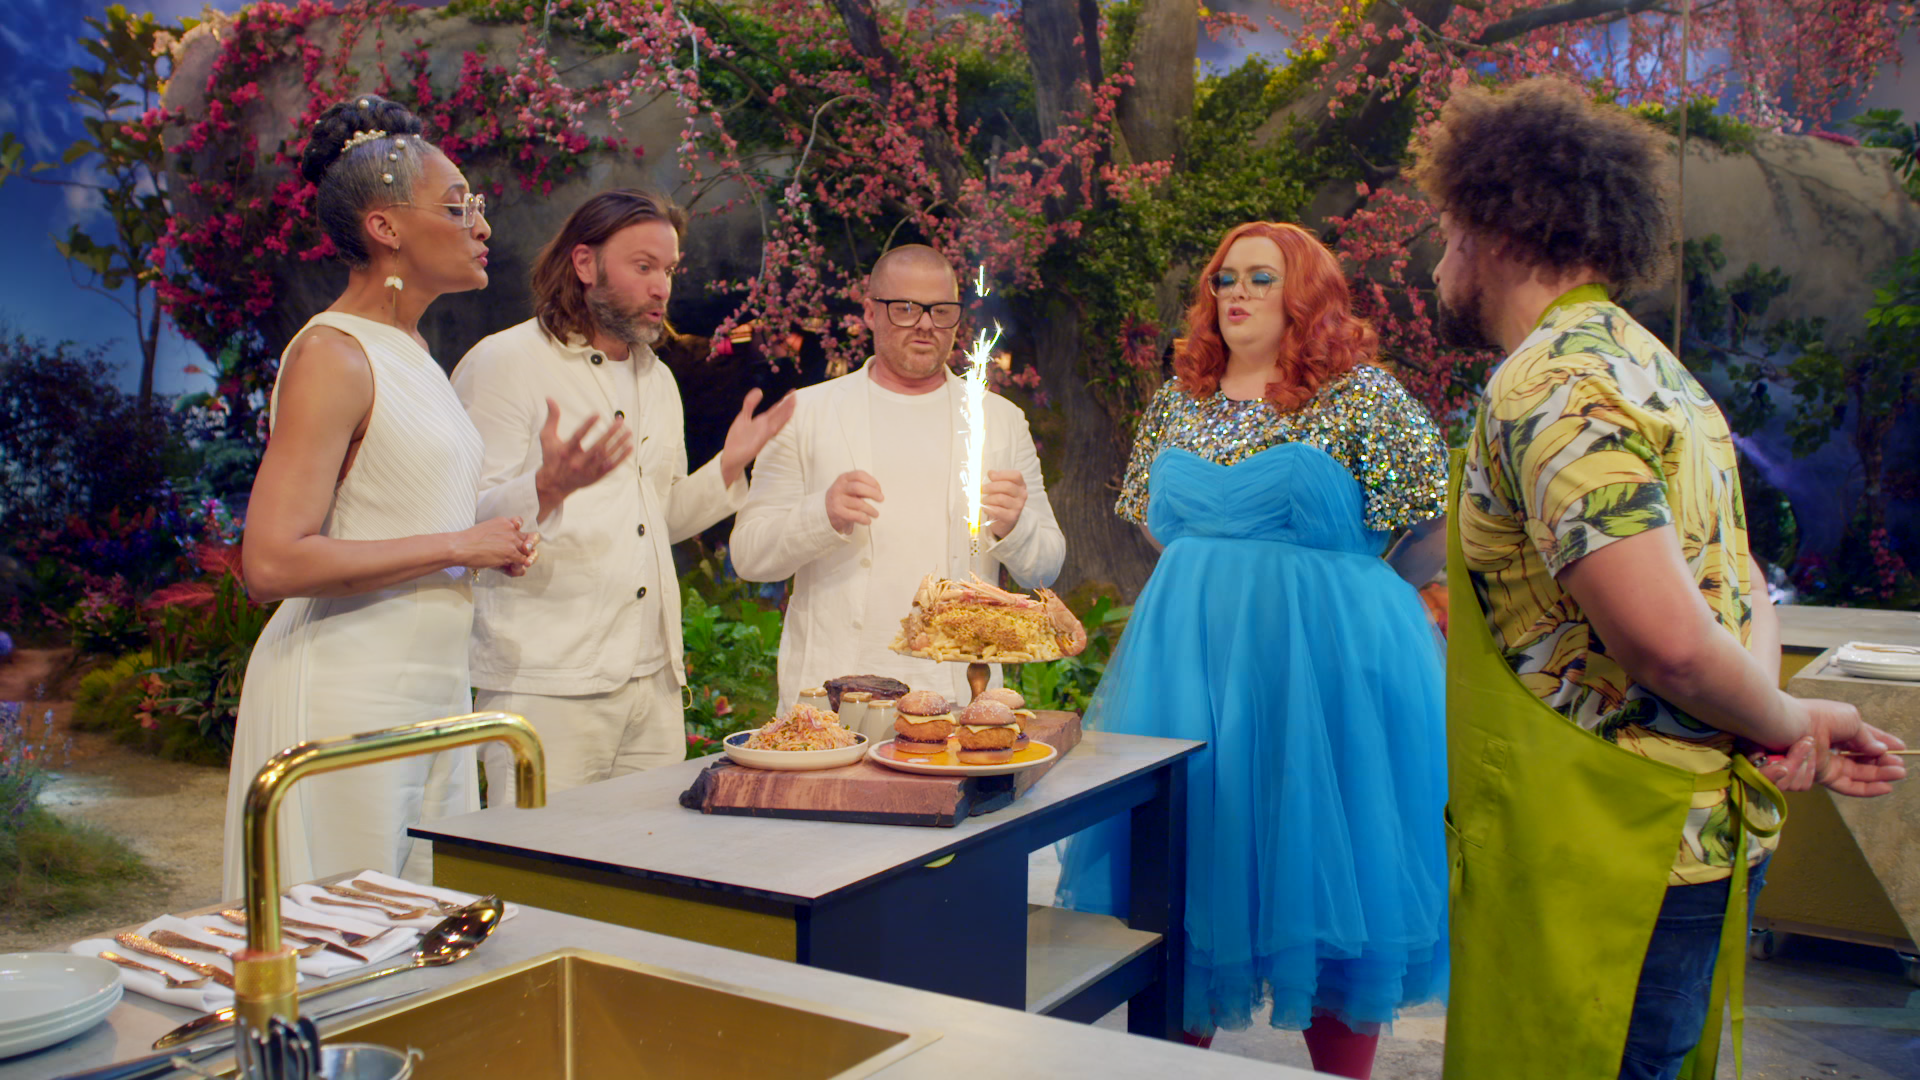 A group stands in a whimsical, Willy Wonka-esque garden, blowing out a sparkler on a cake made of prawns.